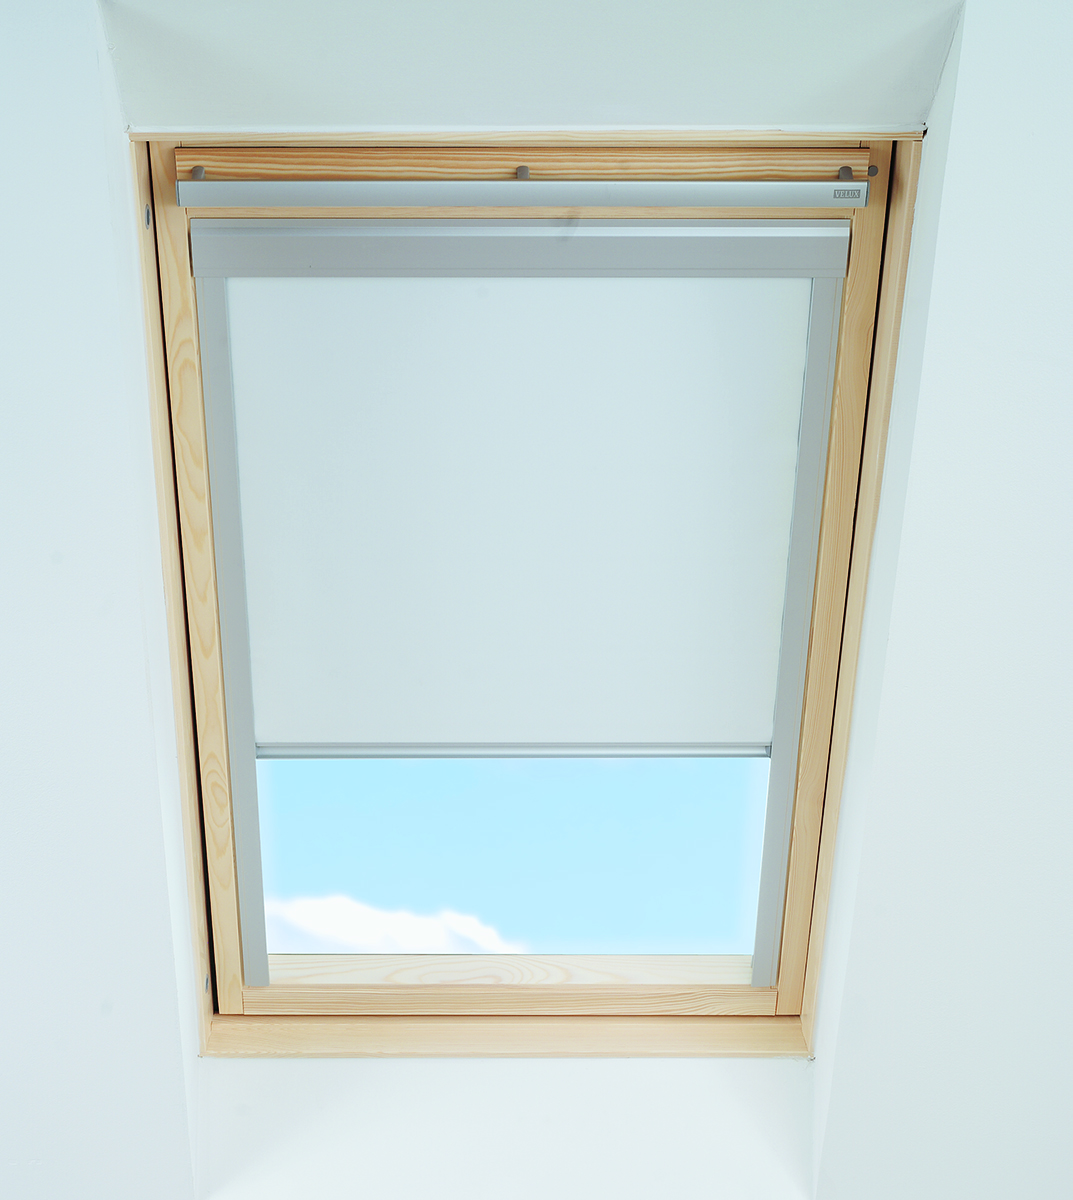 Blackout Blinds For Fakro Roof Window Skylight White Blue